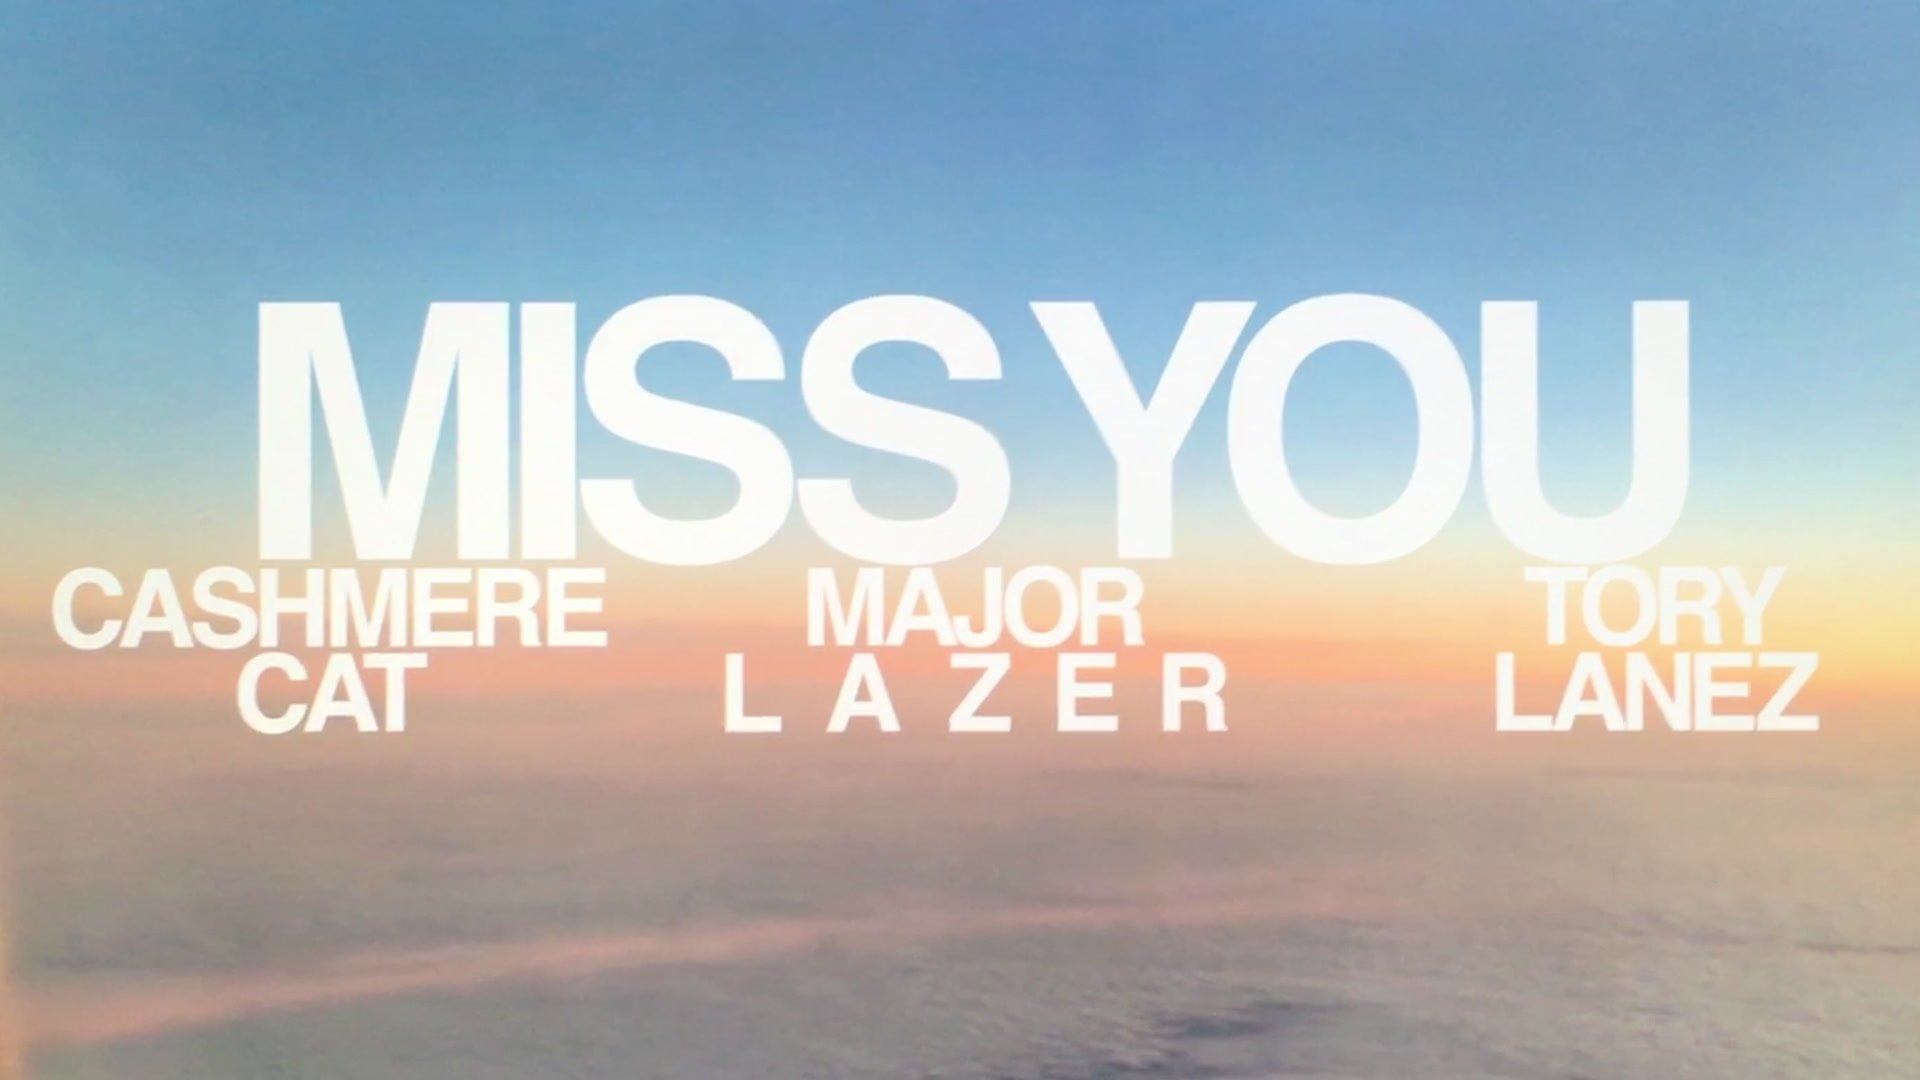 Cashmere Cat Major Lazer Tory Lanez Miss You Lyric Video